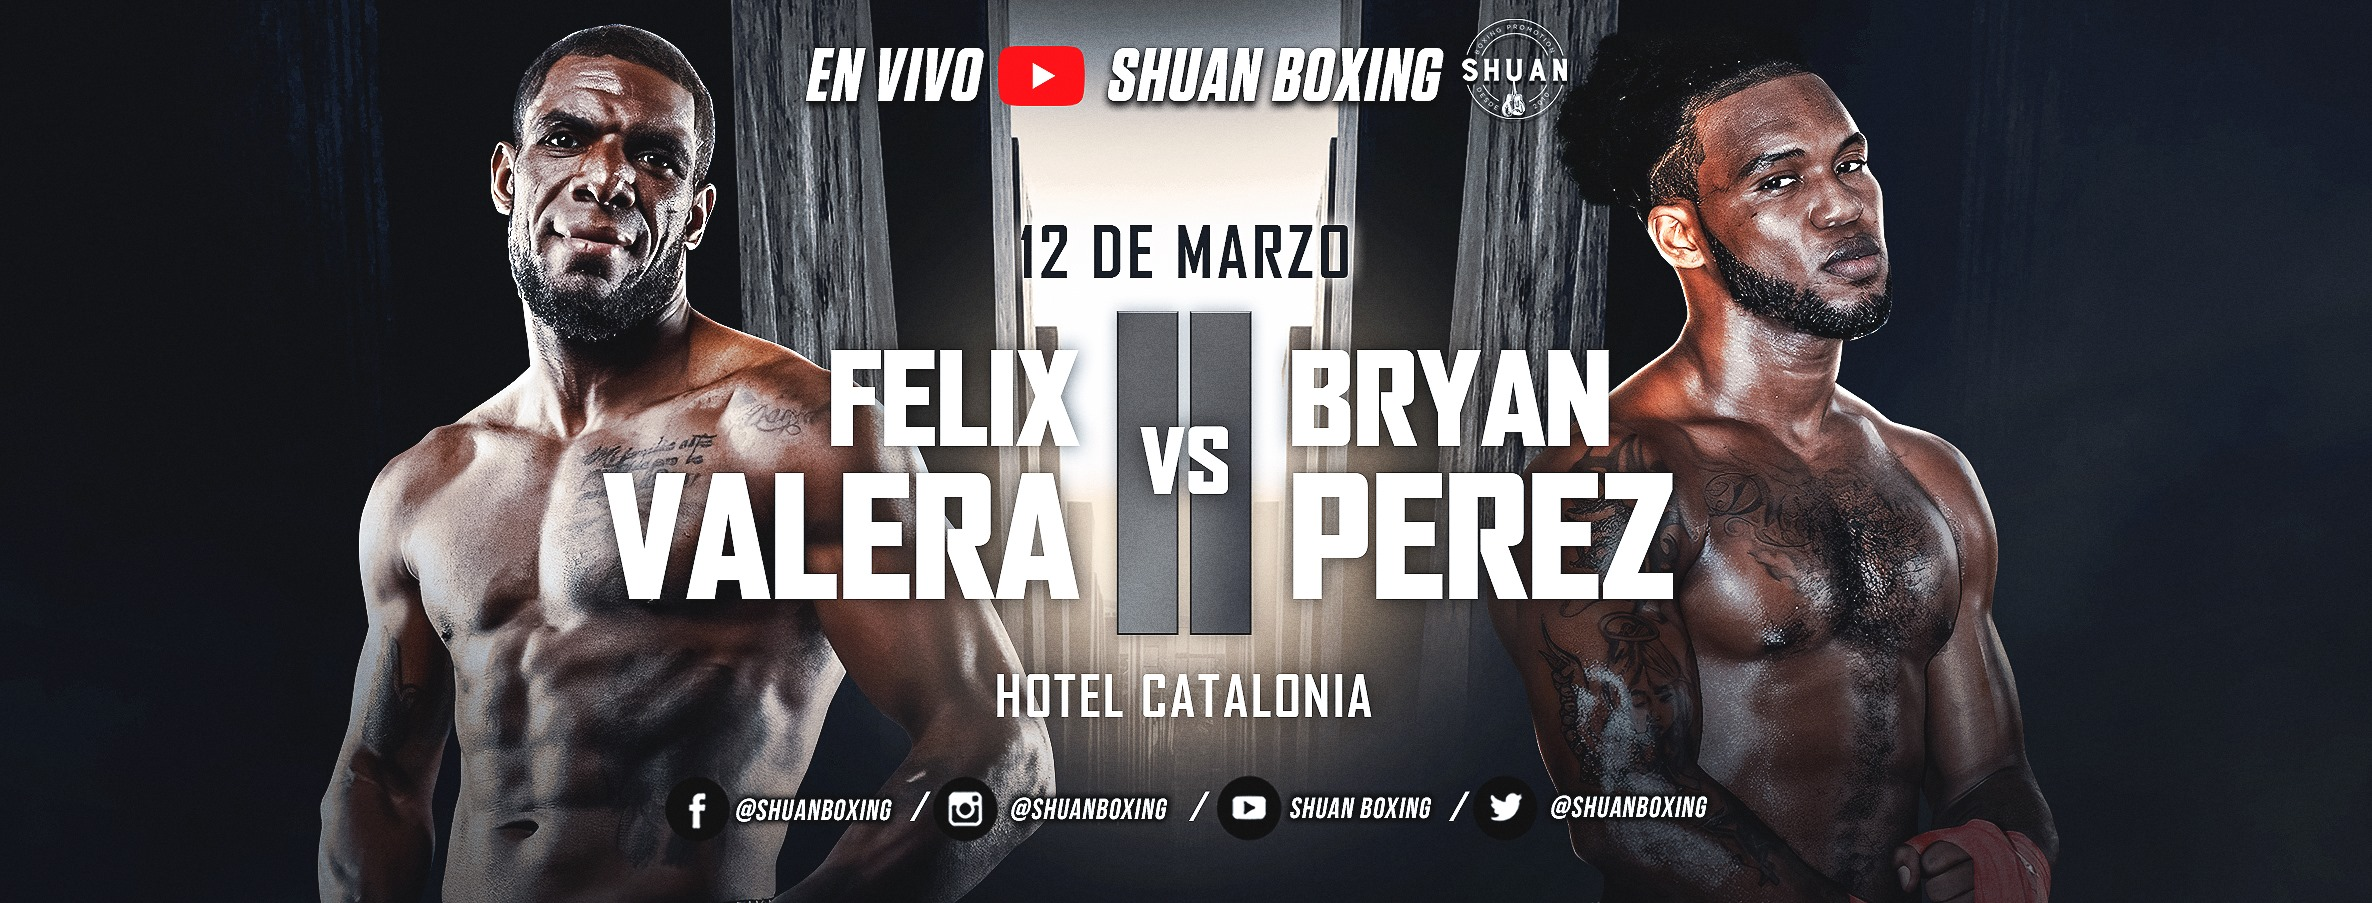 Valera and Pérez will fight in event to honor Gilberto Mendoza